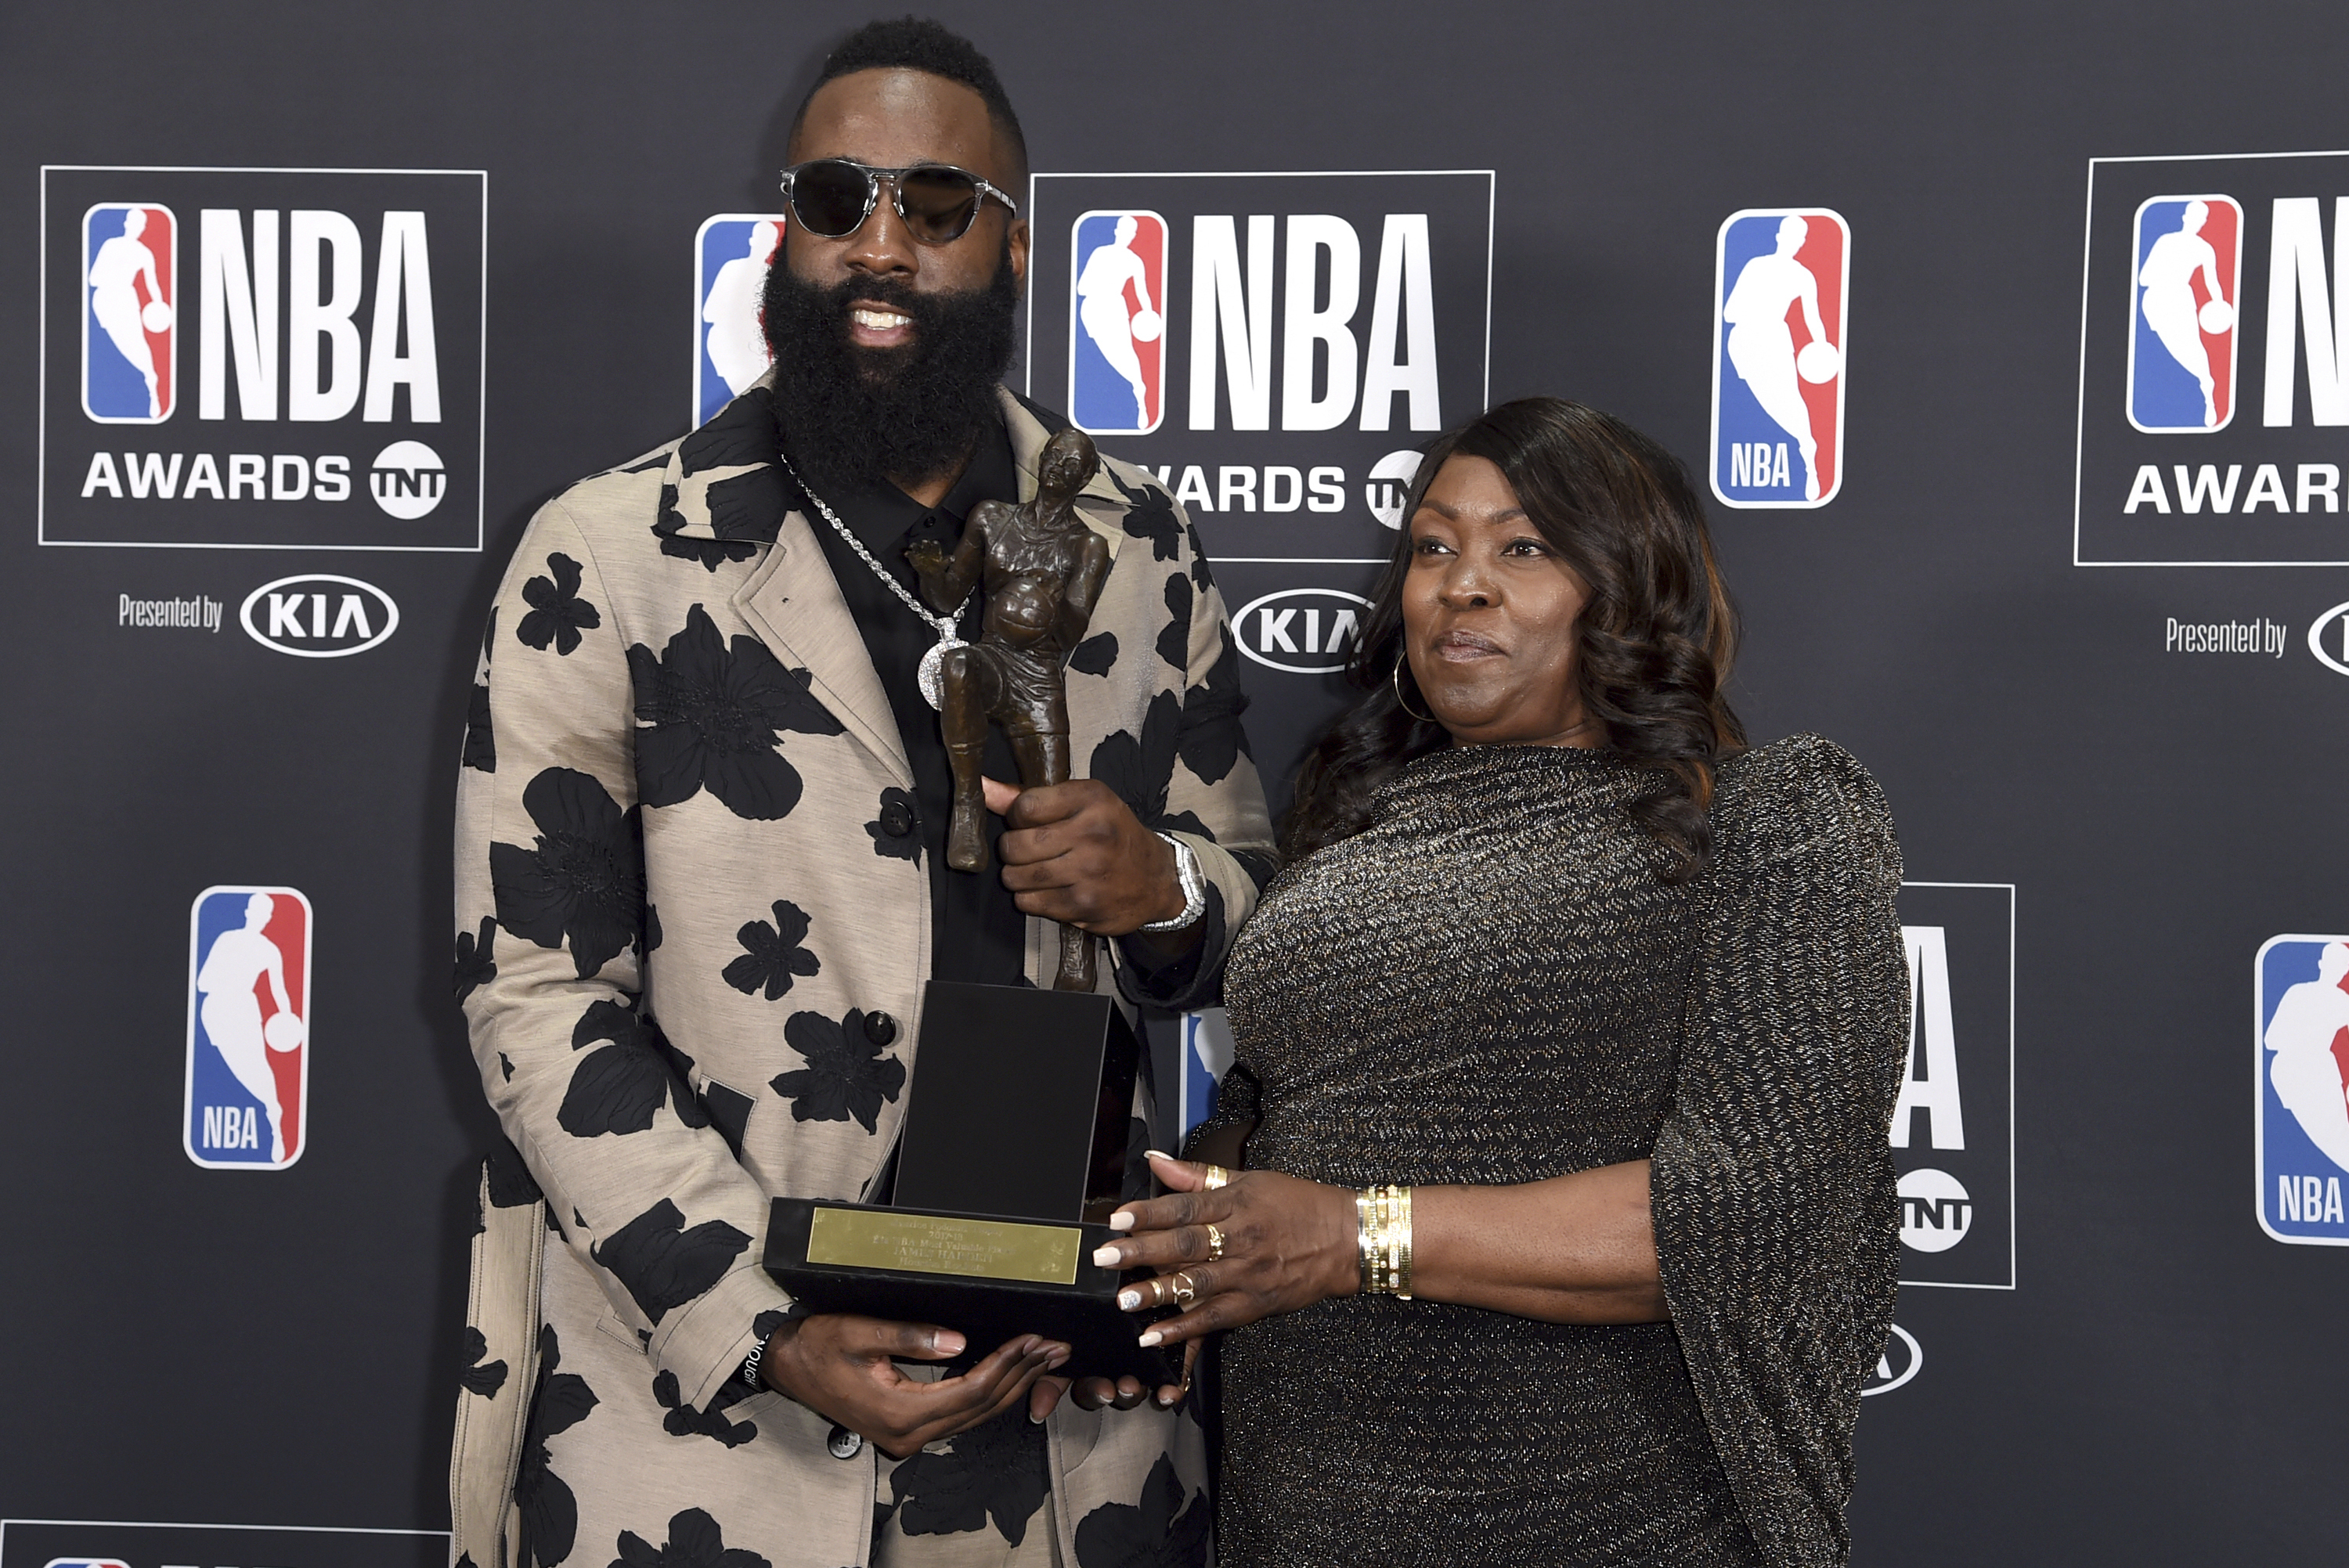 Espejismo Parásito paleta  Adidas Releases James Harden Commercial Featuring His Mom After Winning MVP  | Bleacher Report | Latest News, Videos and Highlights